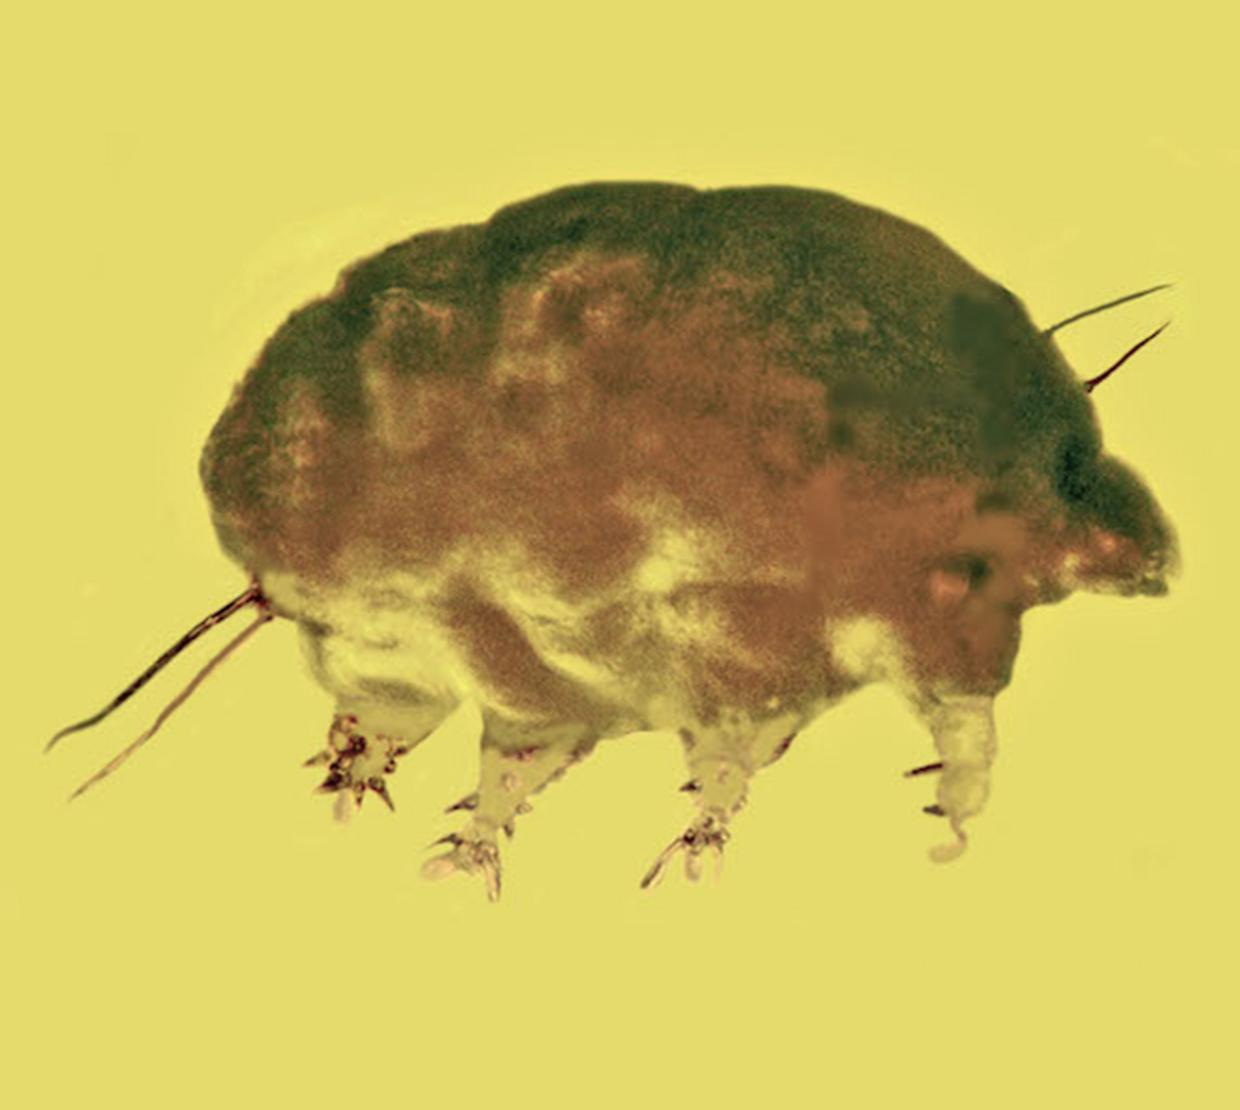 Mold Pig insect fossilized in yellow amber